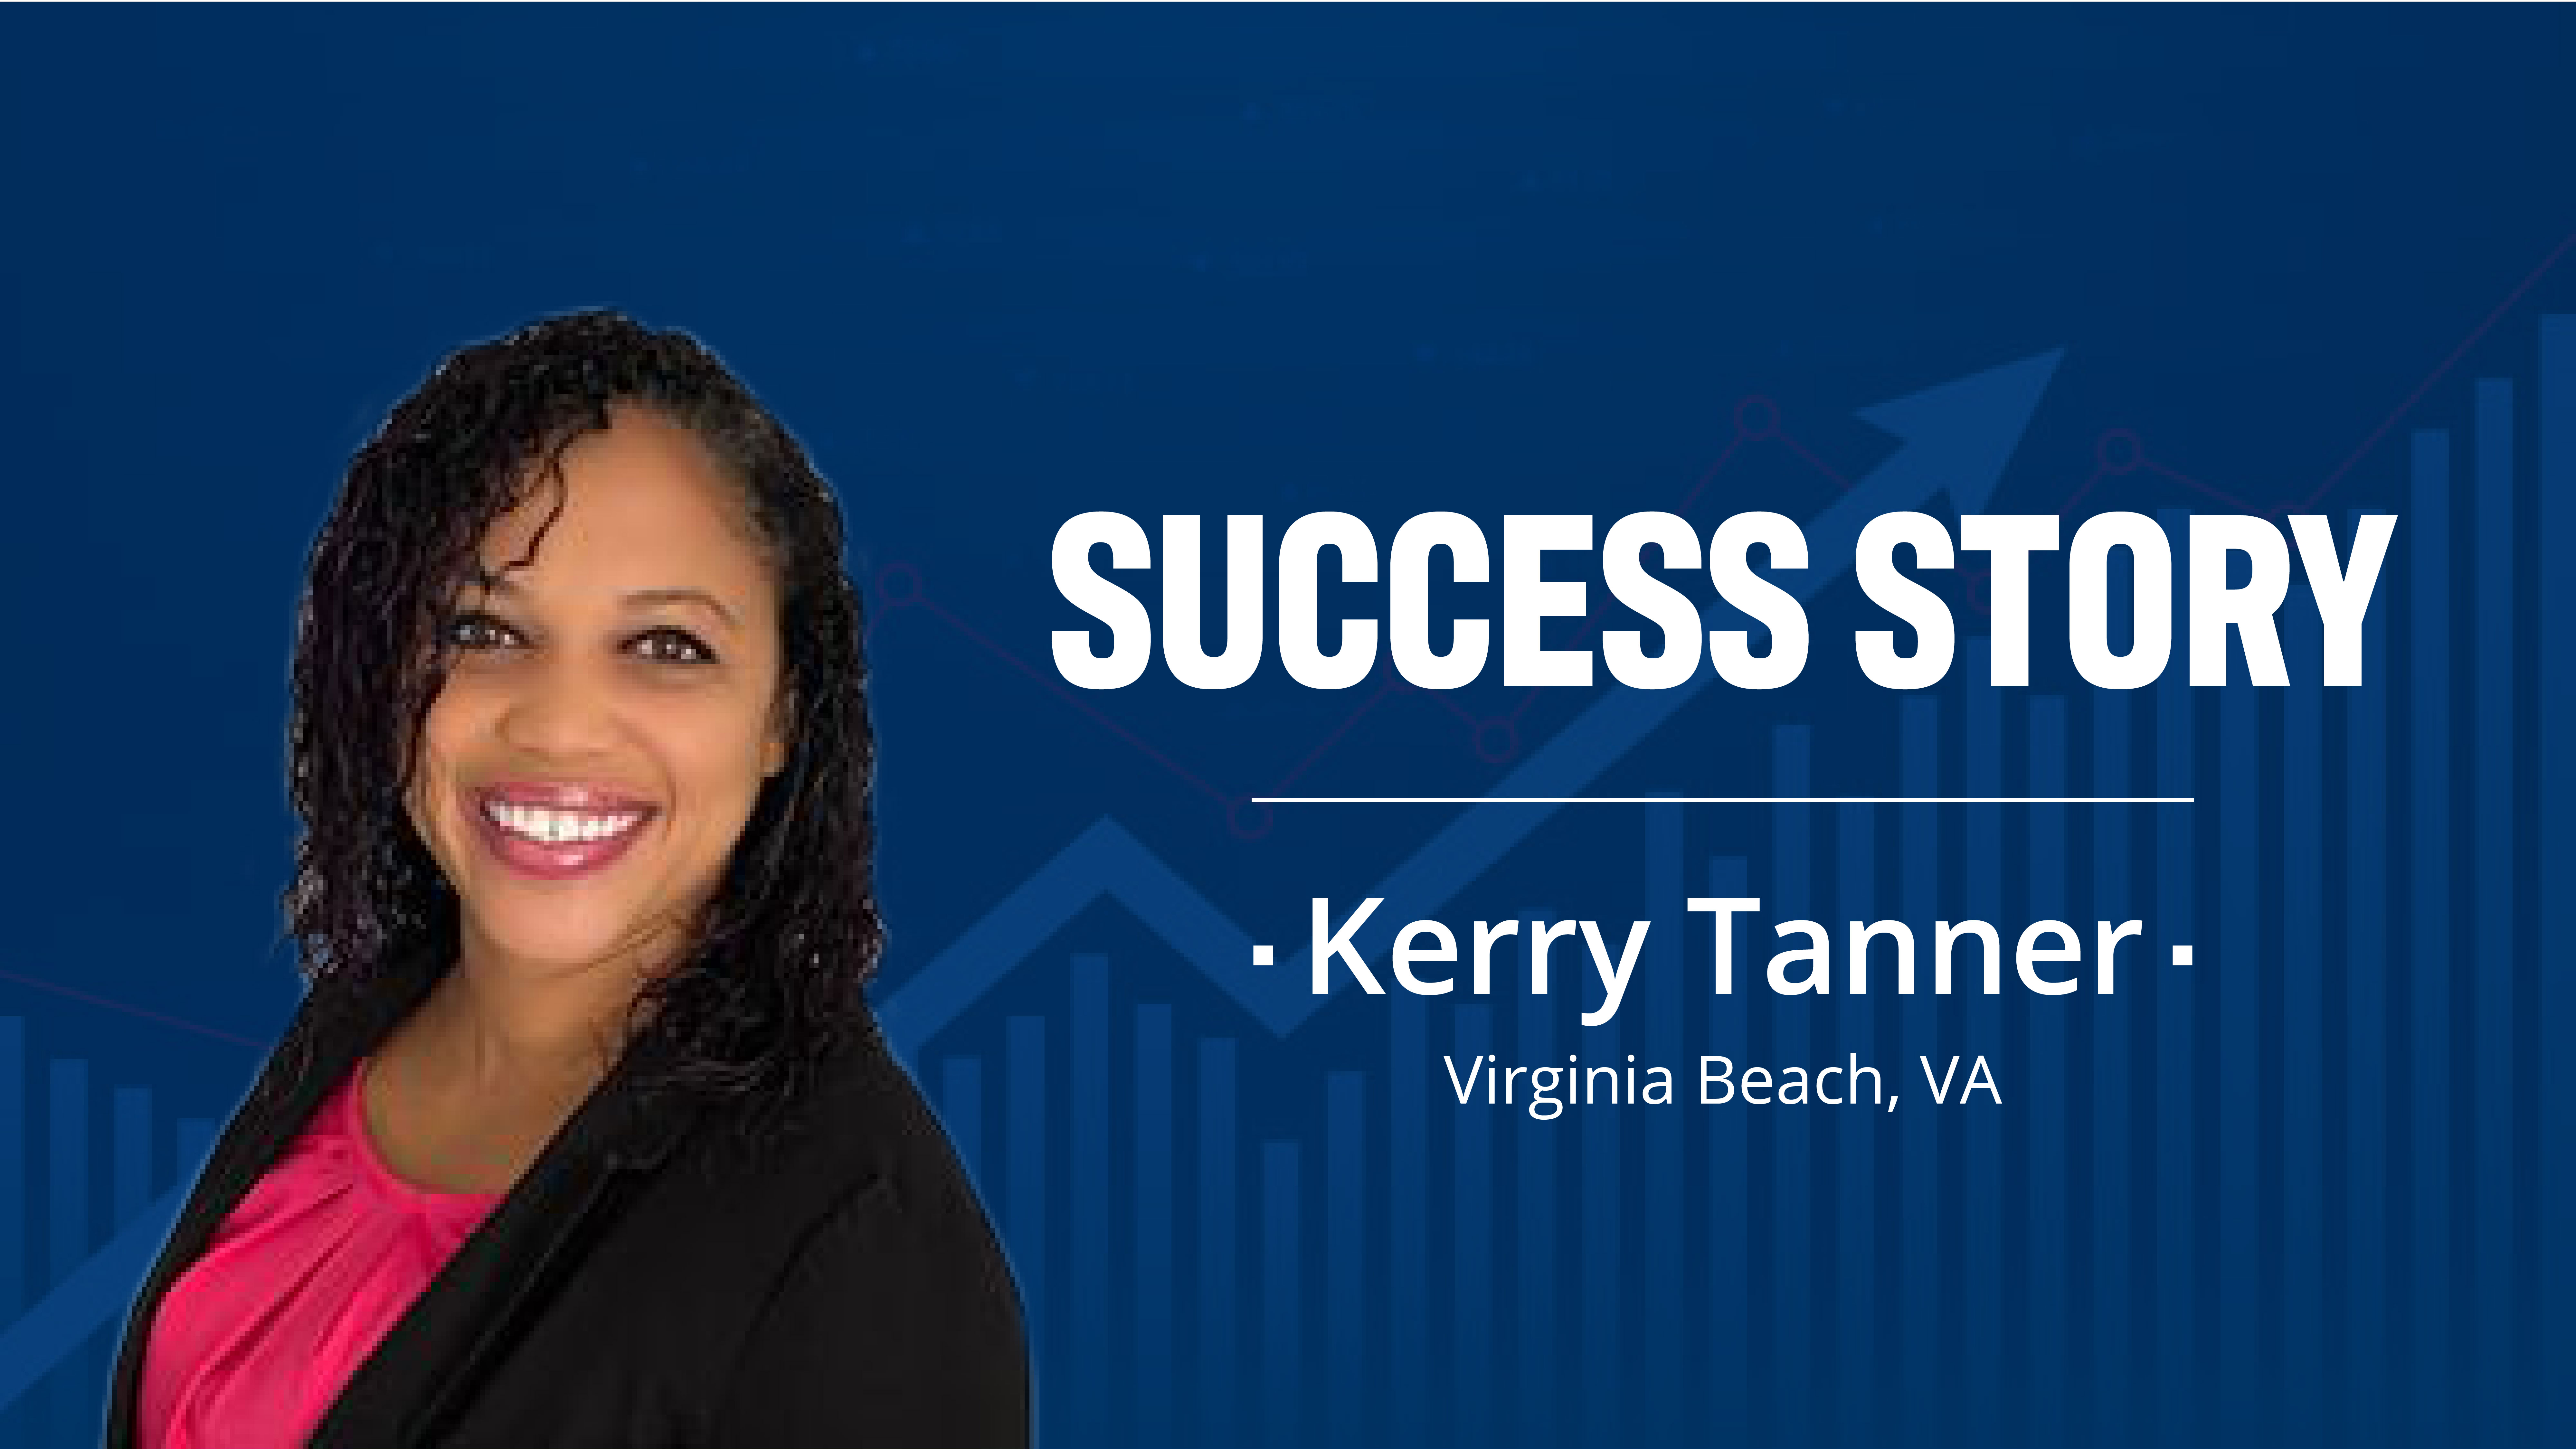 SUCCESS STORY: Kerry Tanner